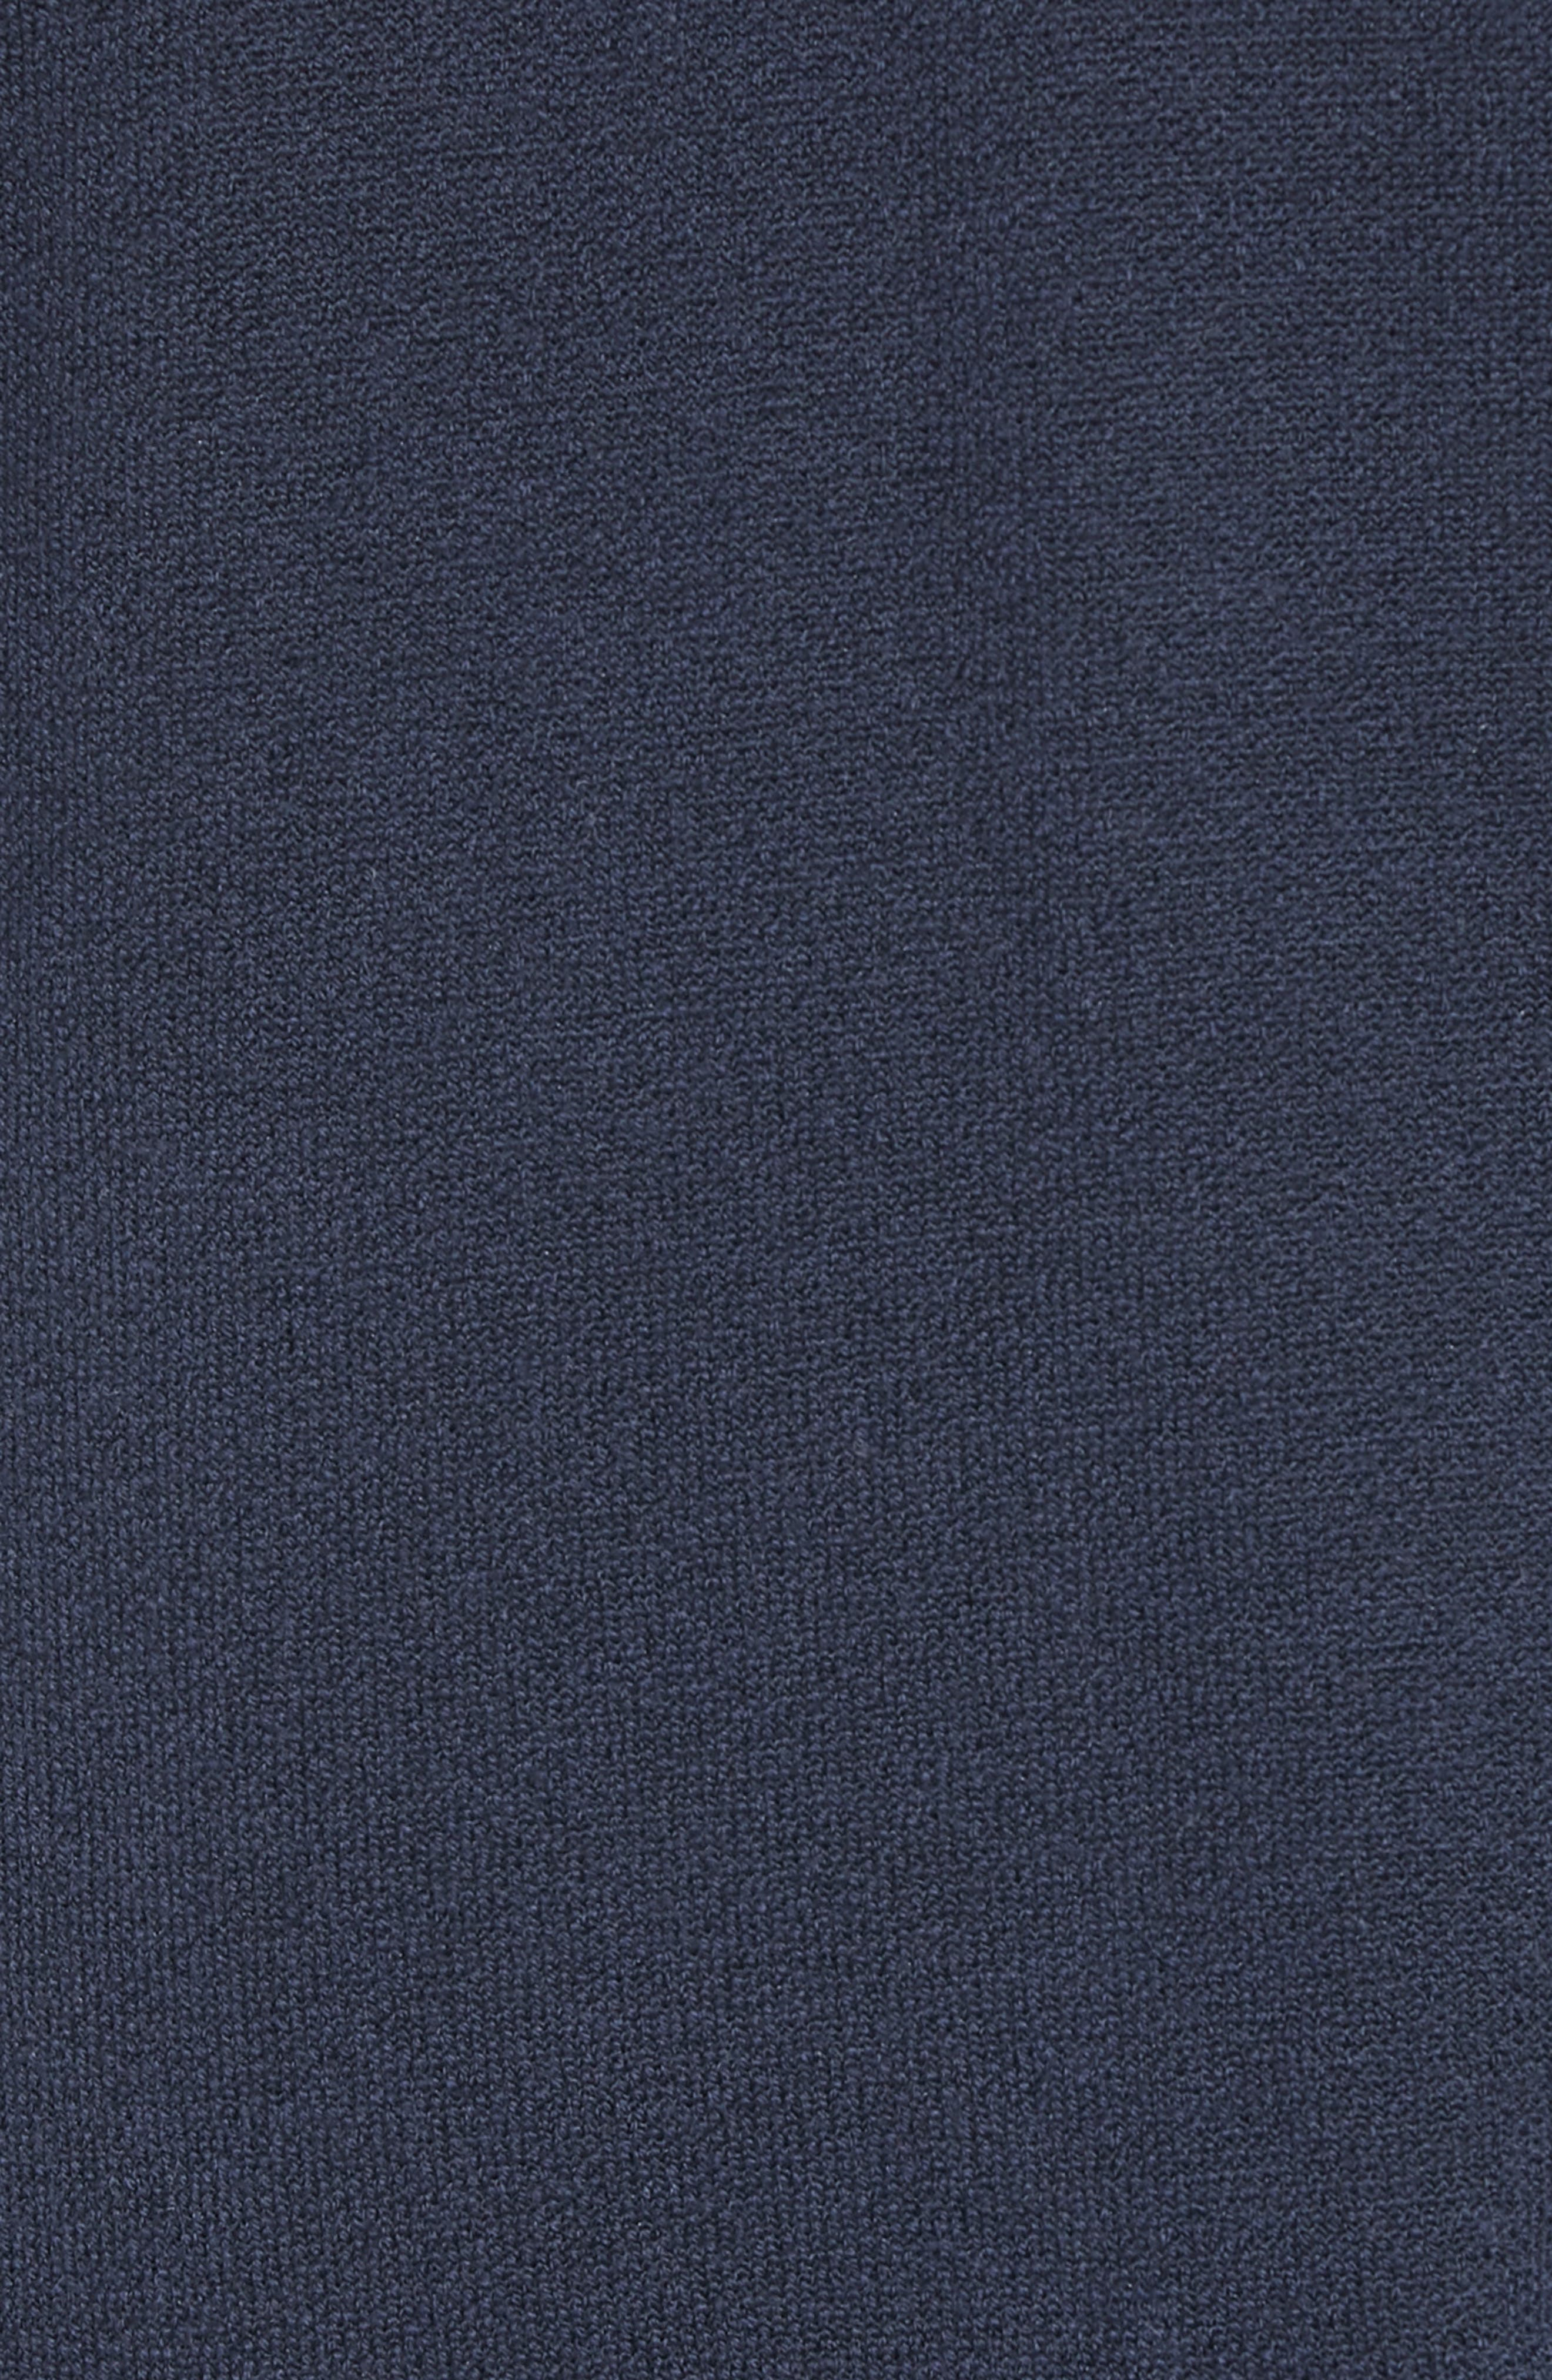 BEST MADE CO.,                             The Merino Wool Fleece Sweatpants,                             Alternate thumbnail 6, color,                             NAVY